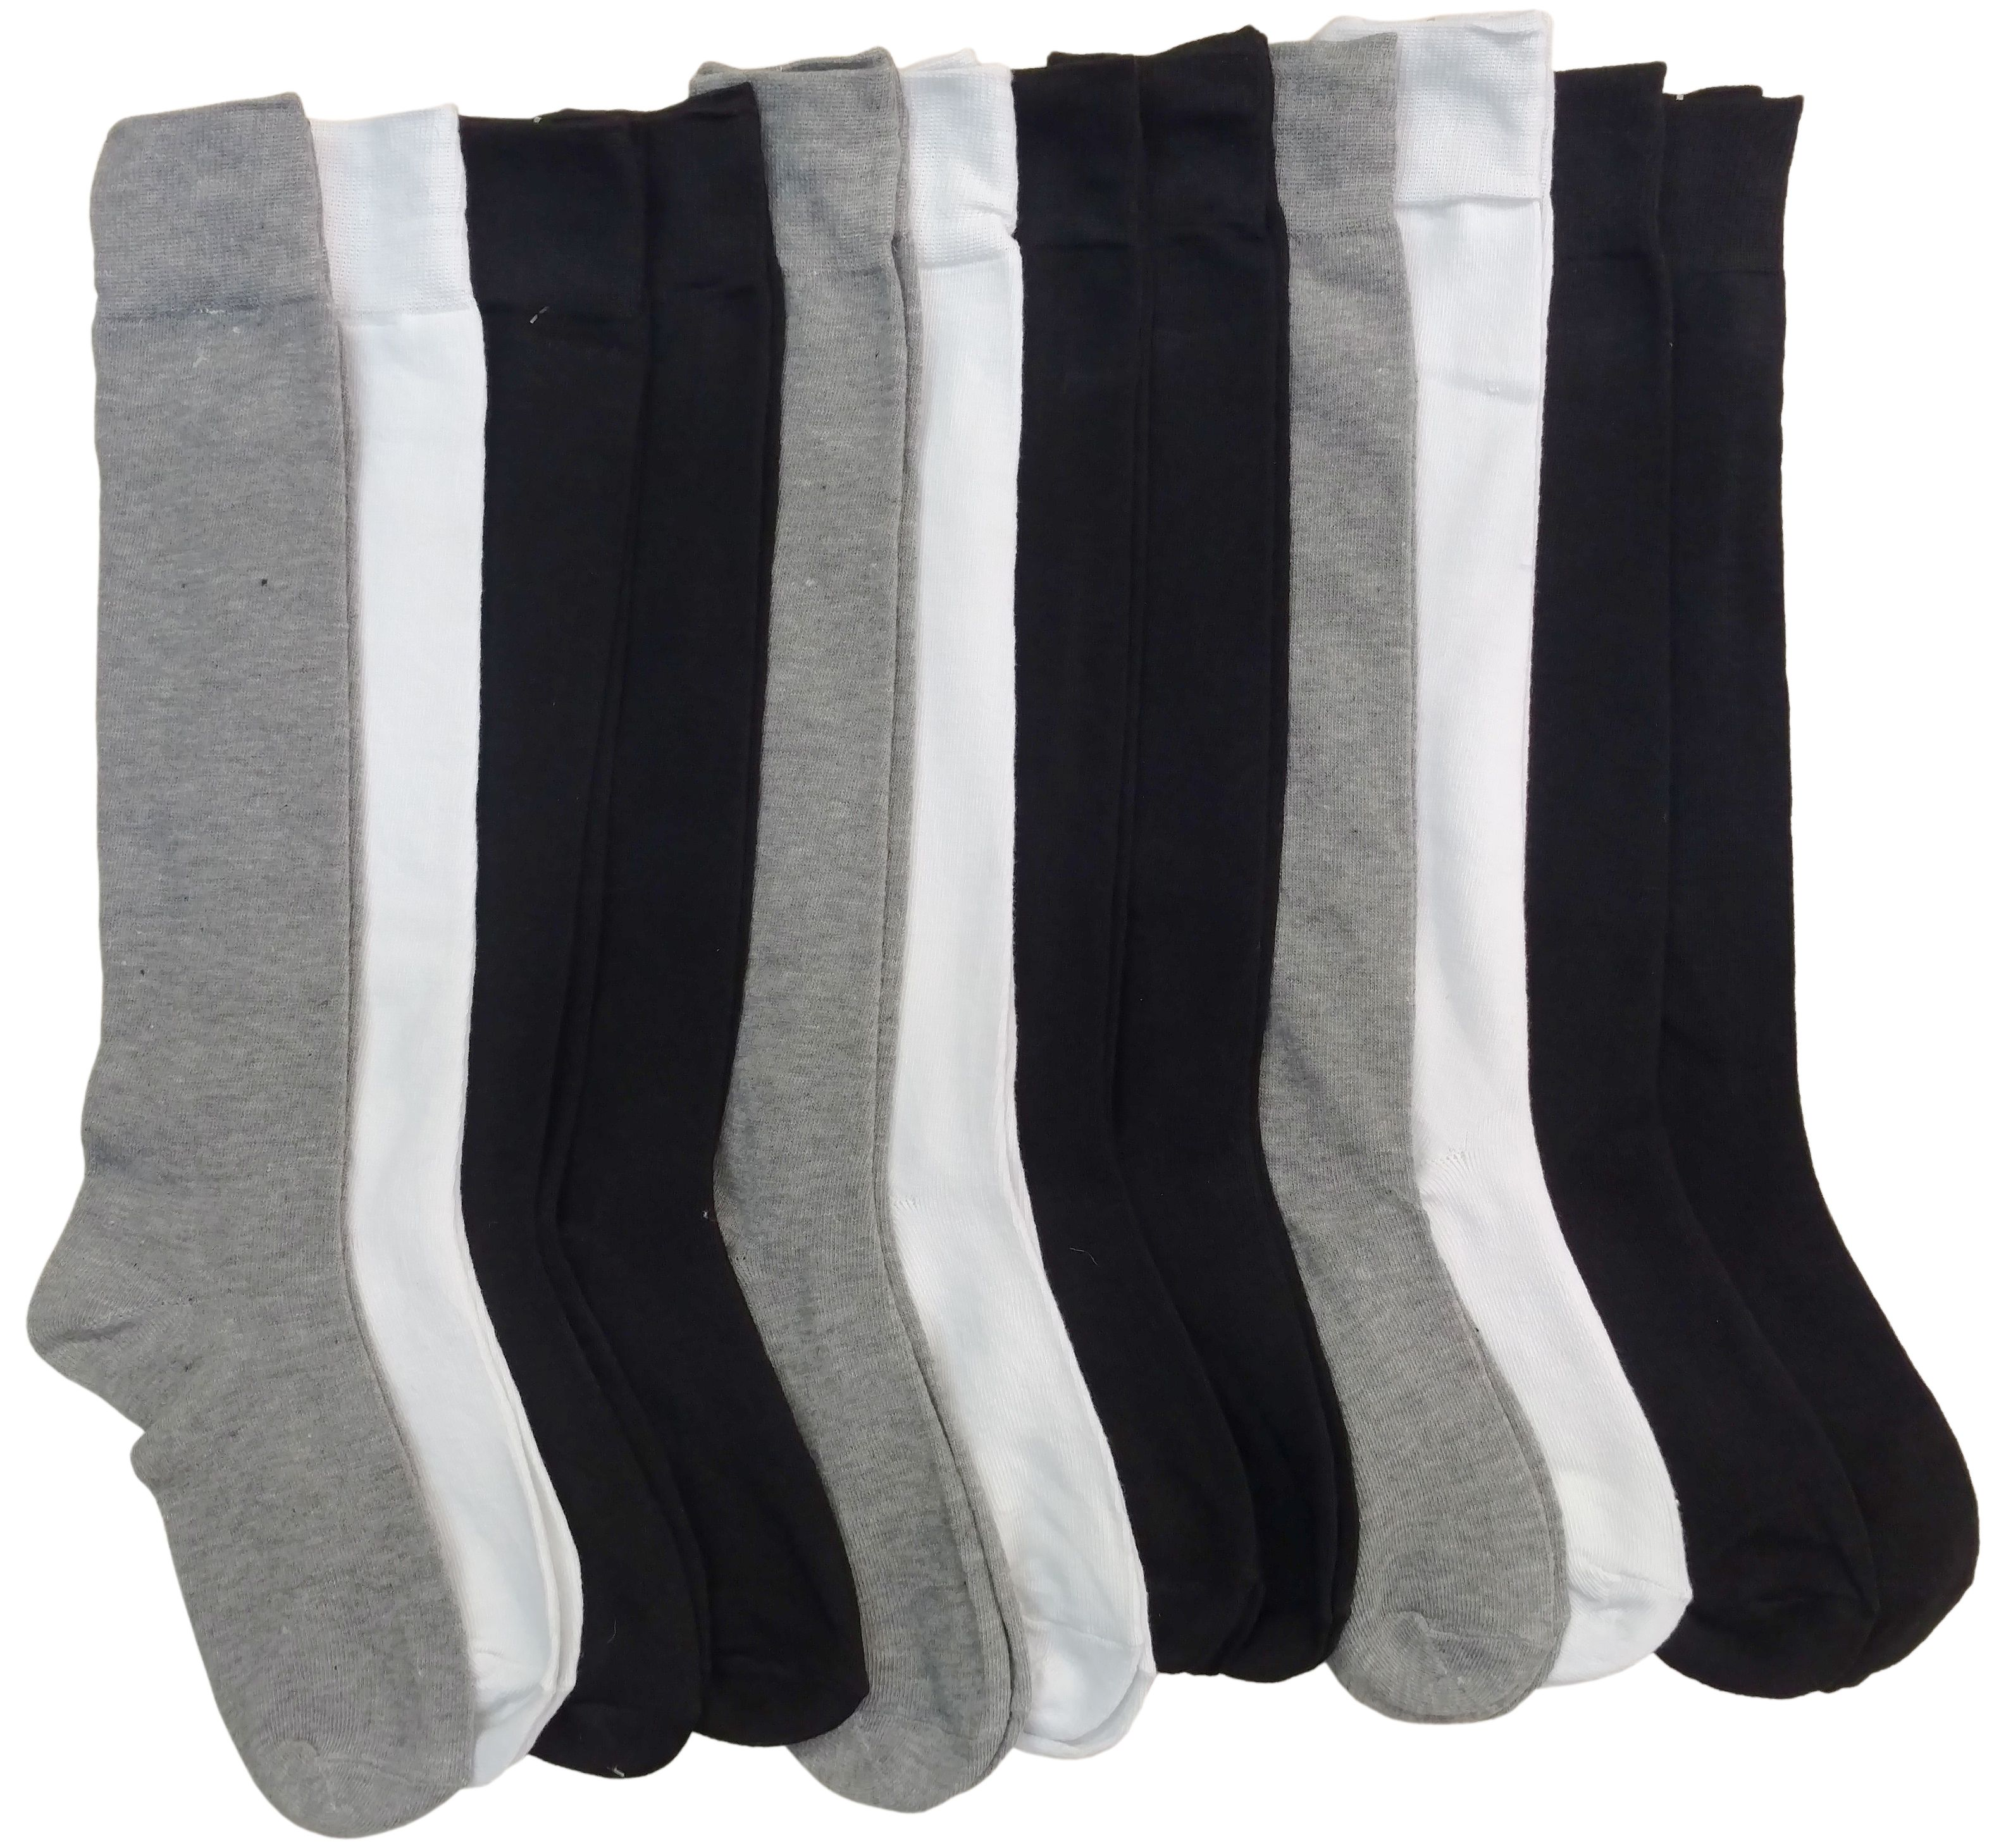 12 Pairs Womens Knee High Socks, Boot Socks, Long Socks